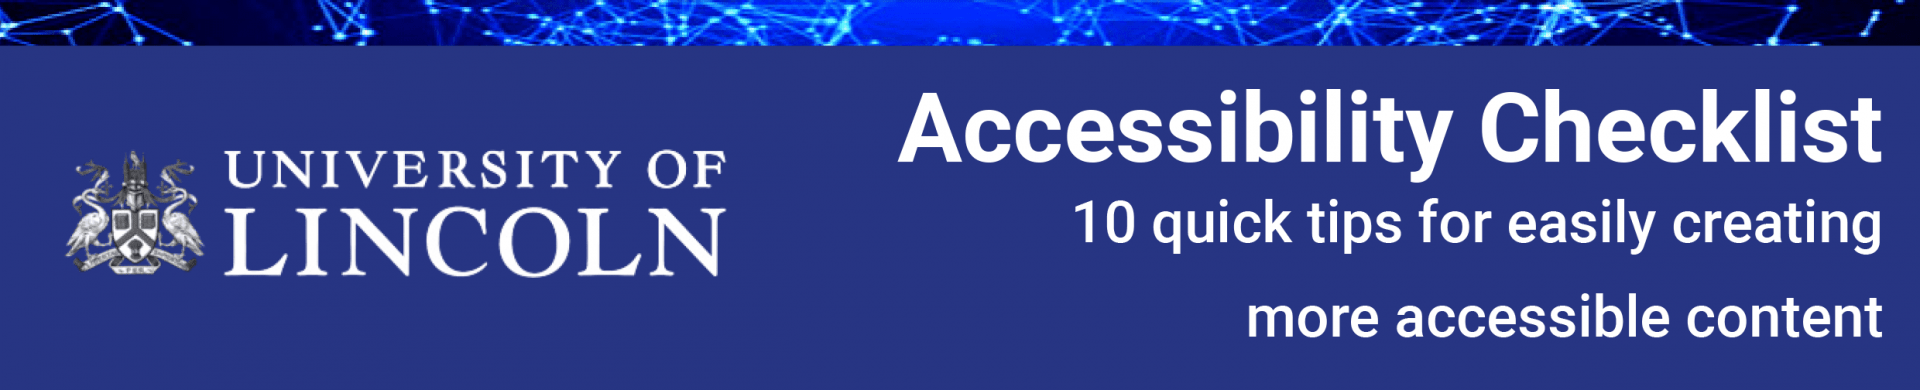 Accessibility Checklist - 10 quick tips for easily creating more accessible content